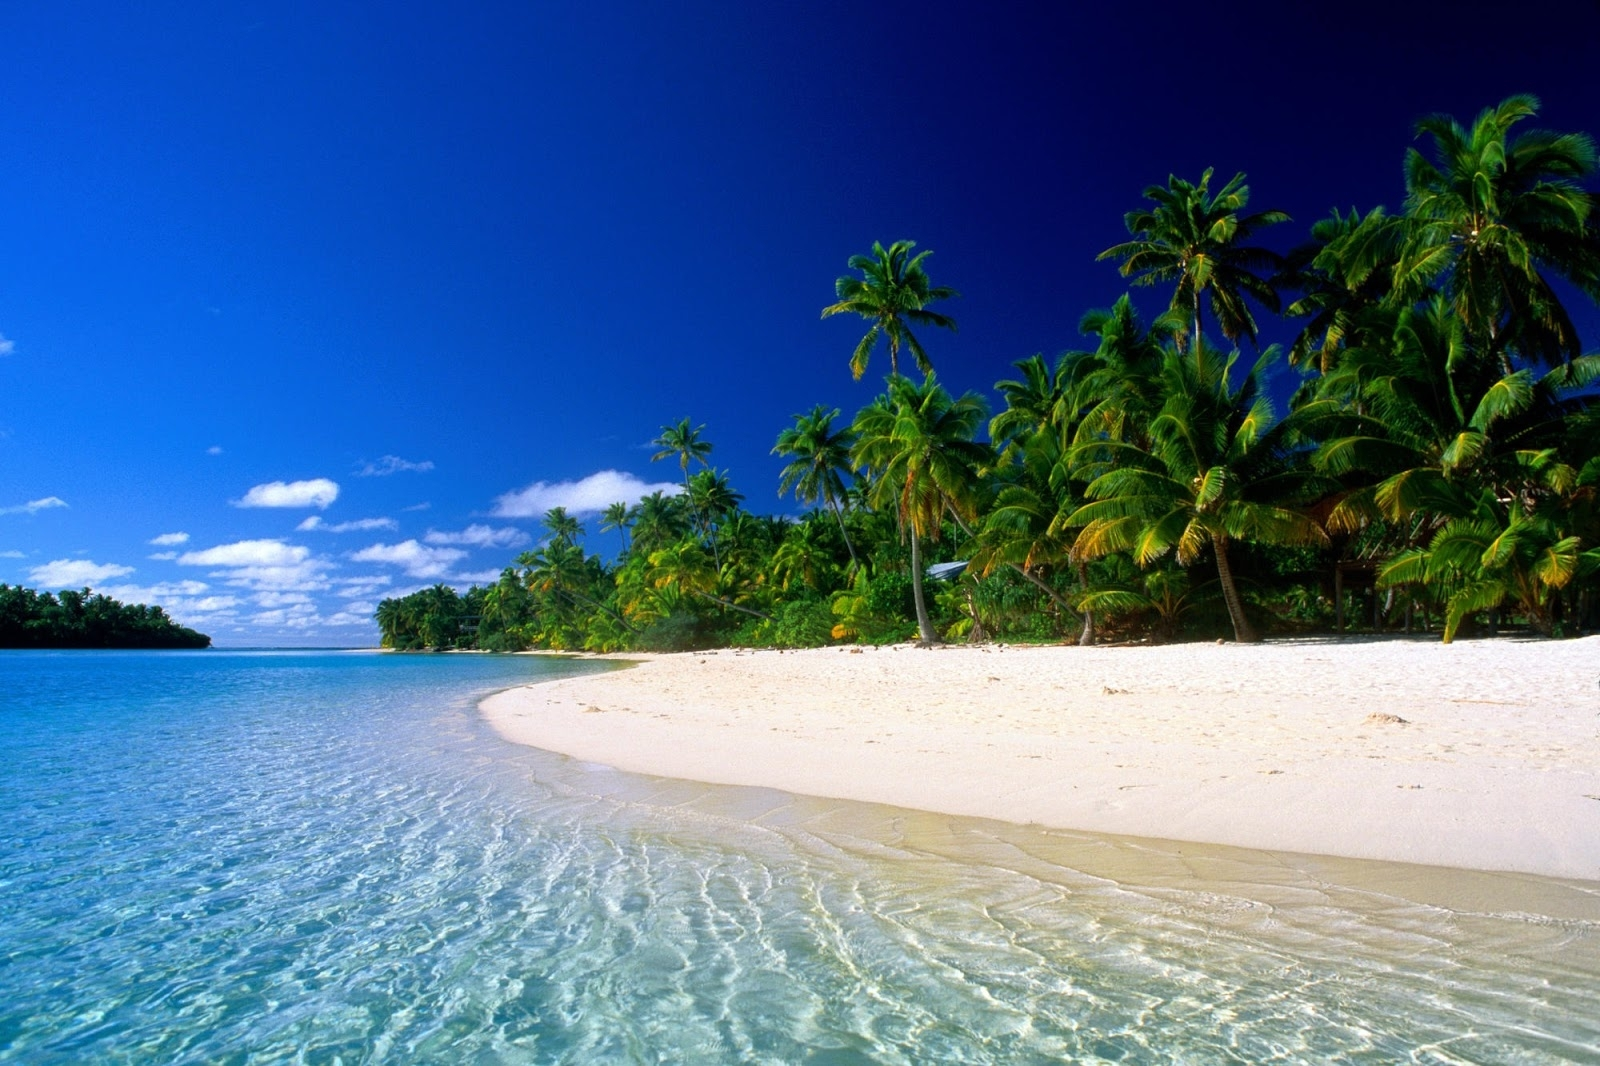 10 top beautiful beaches in the world wallpaper full hd 1080p for pc